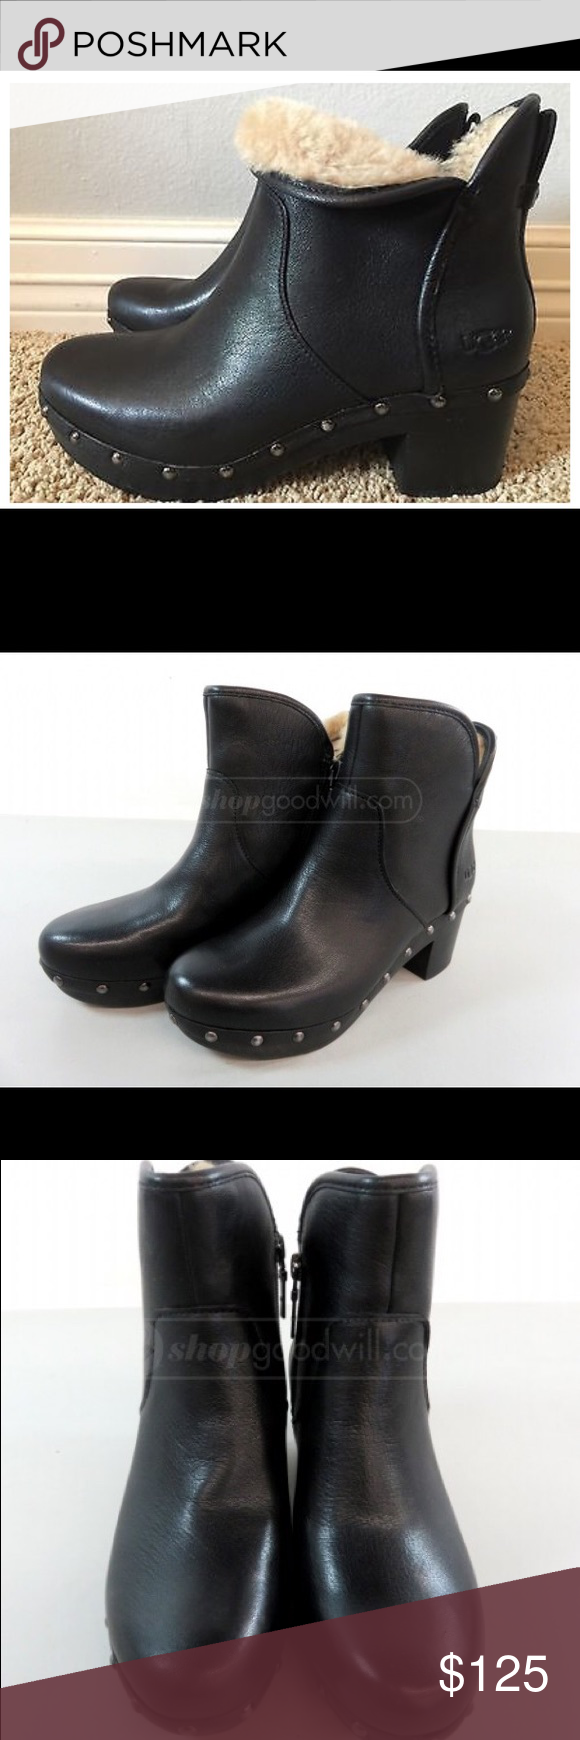 fb2cee90a53 Size 5 Ugg Cam II Ankle Boot -Black - Soft suede upper with nail ...